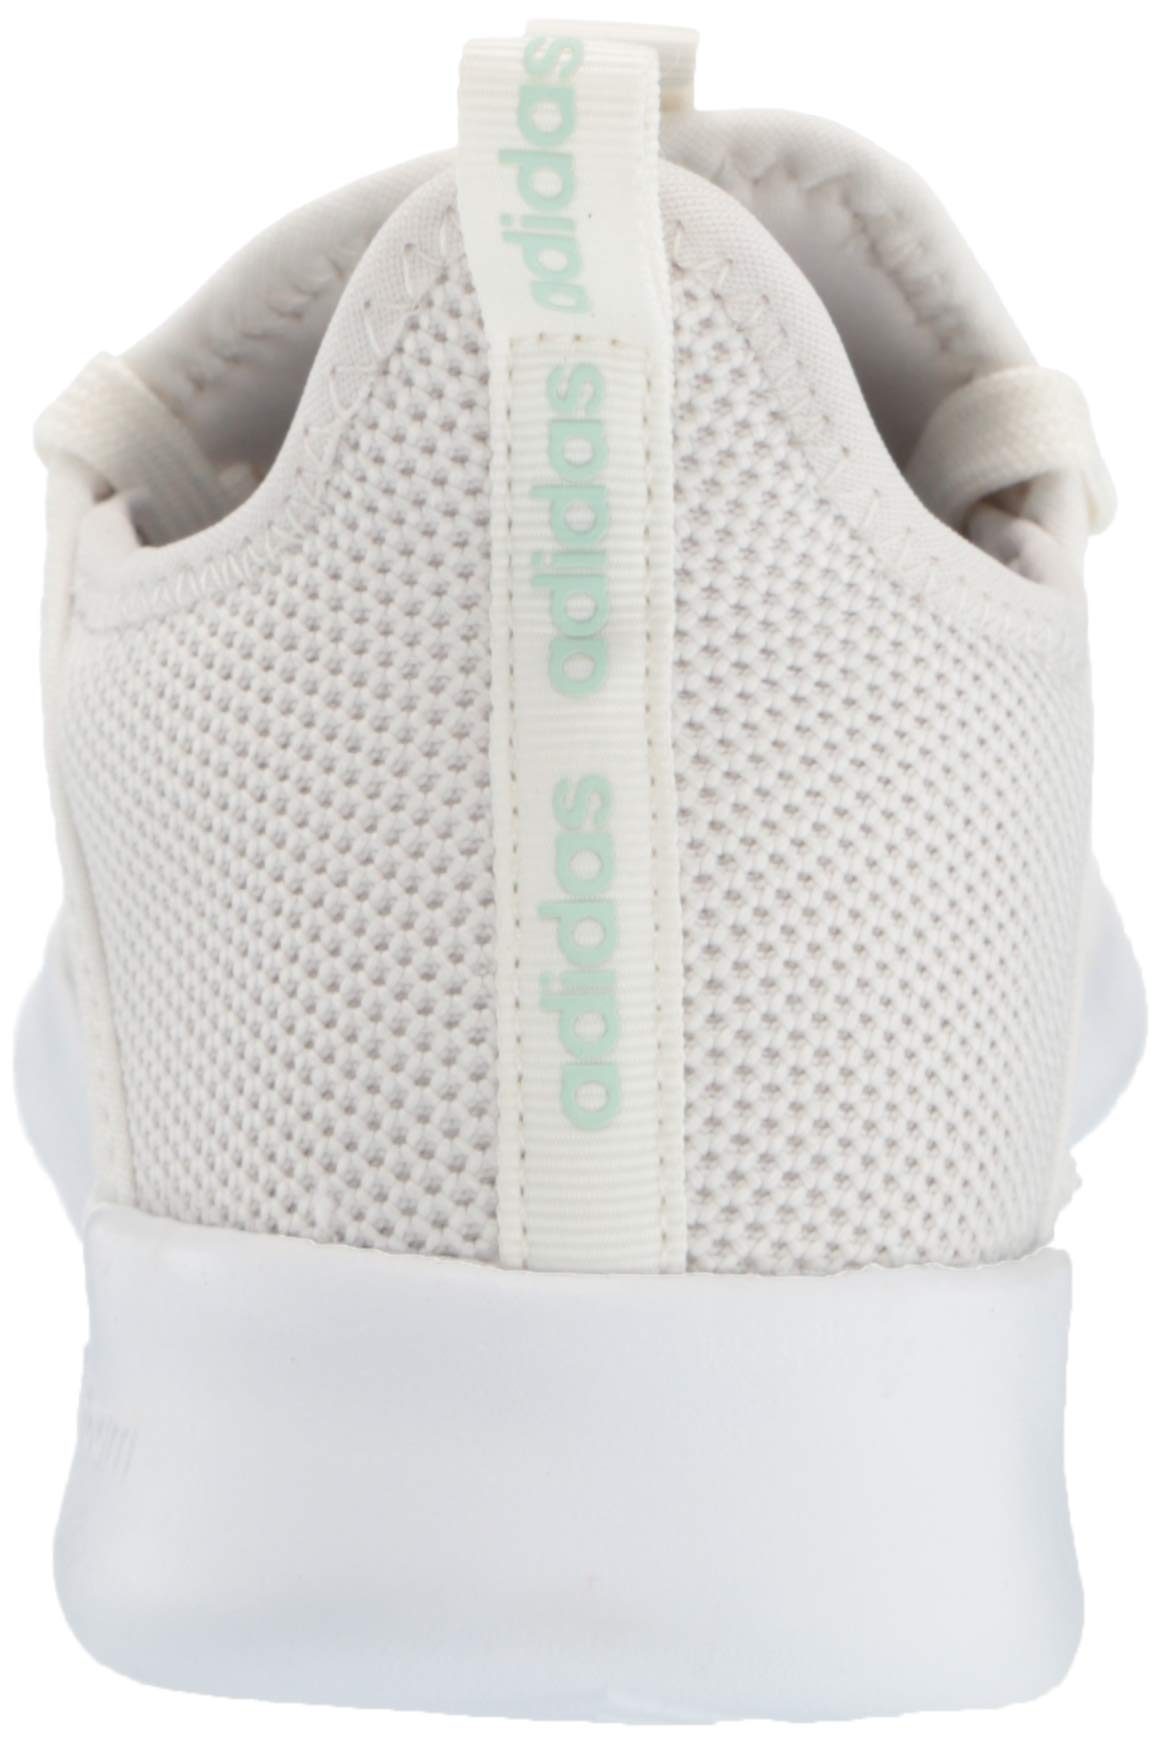 adidas Women's Cloudfoam Pure Running Shoe, Cloud White/Ice Mint, 5.5 Medium US by adidas (Image #2)